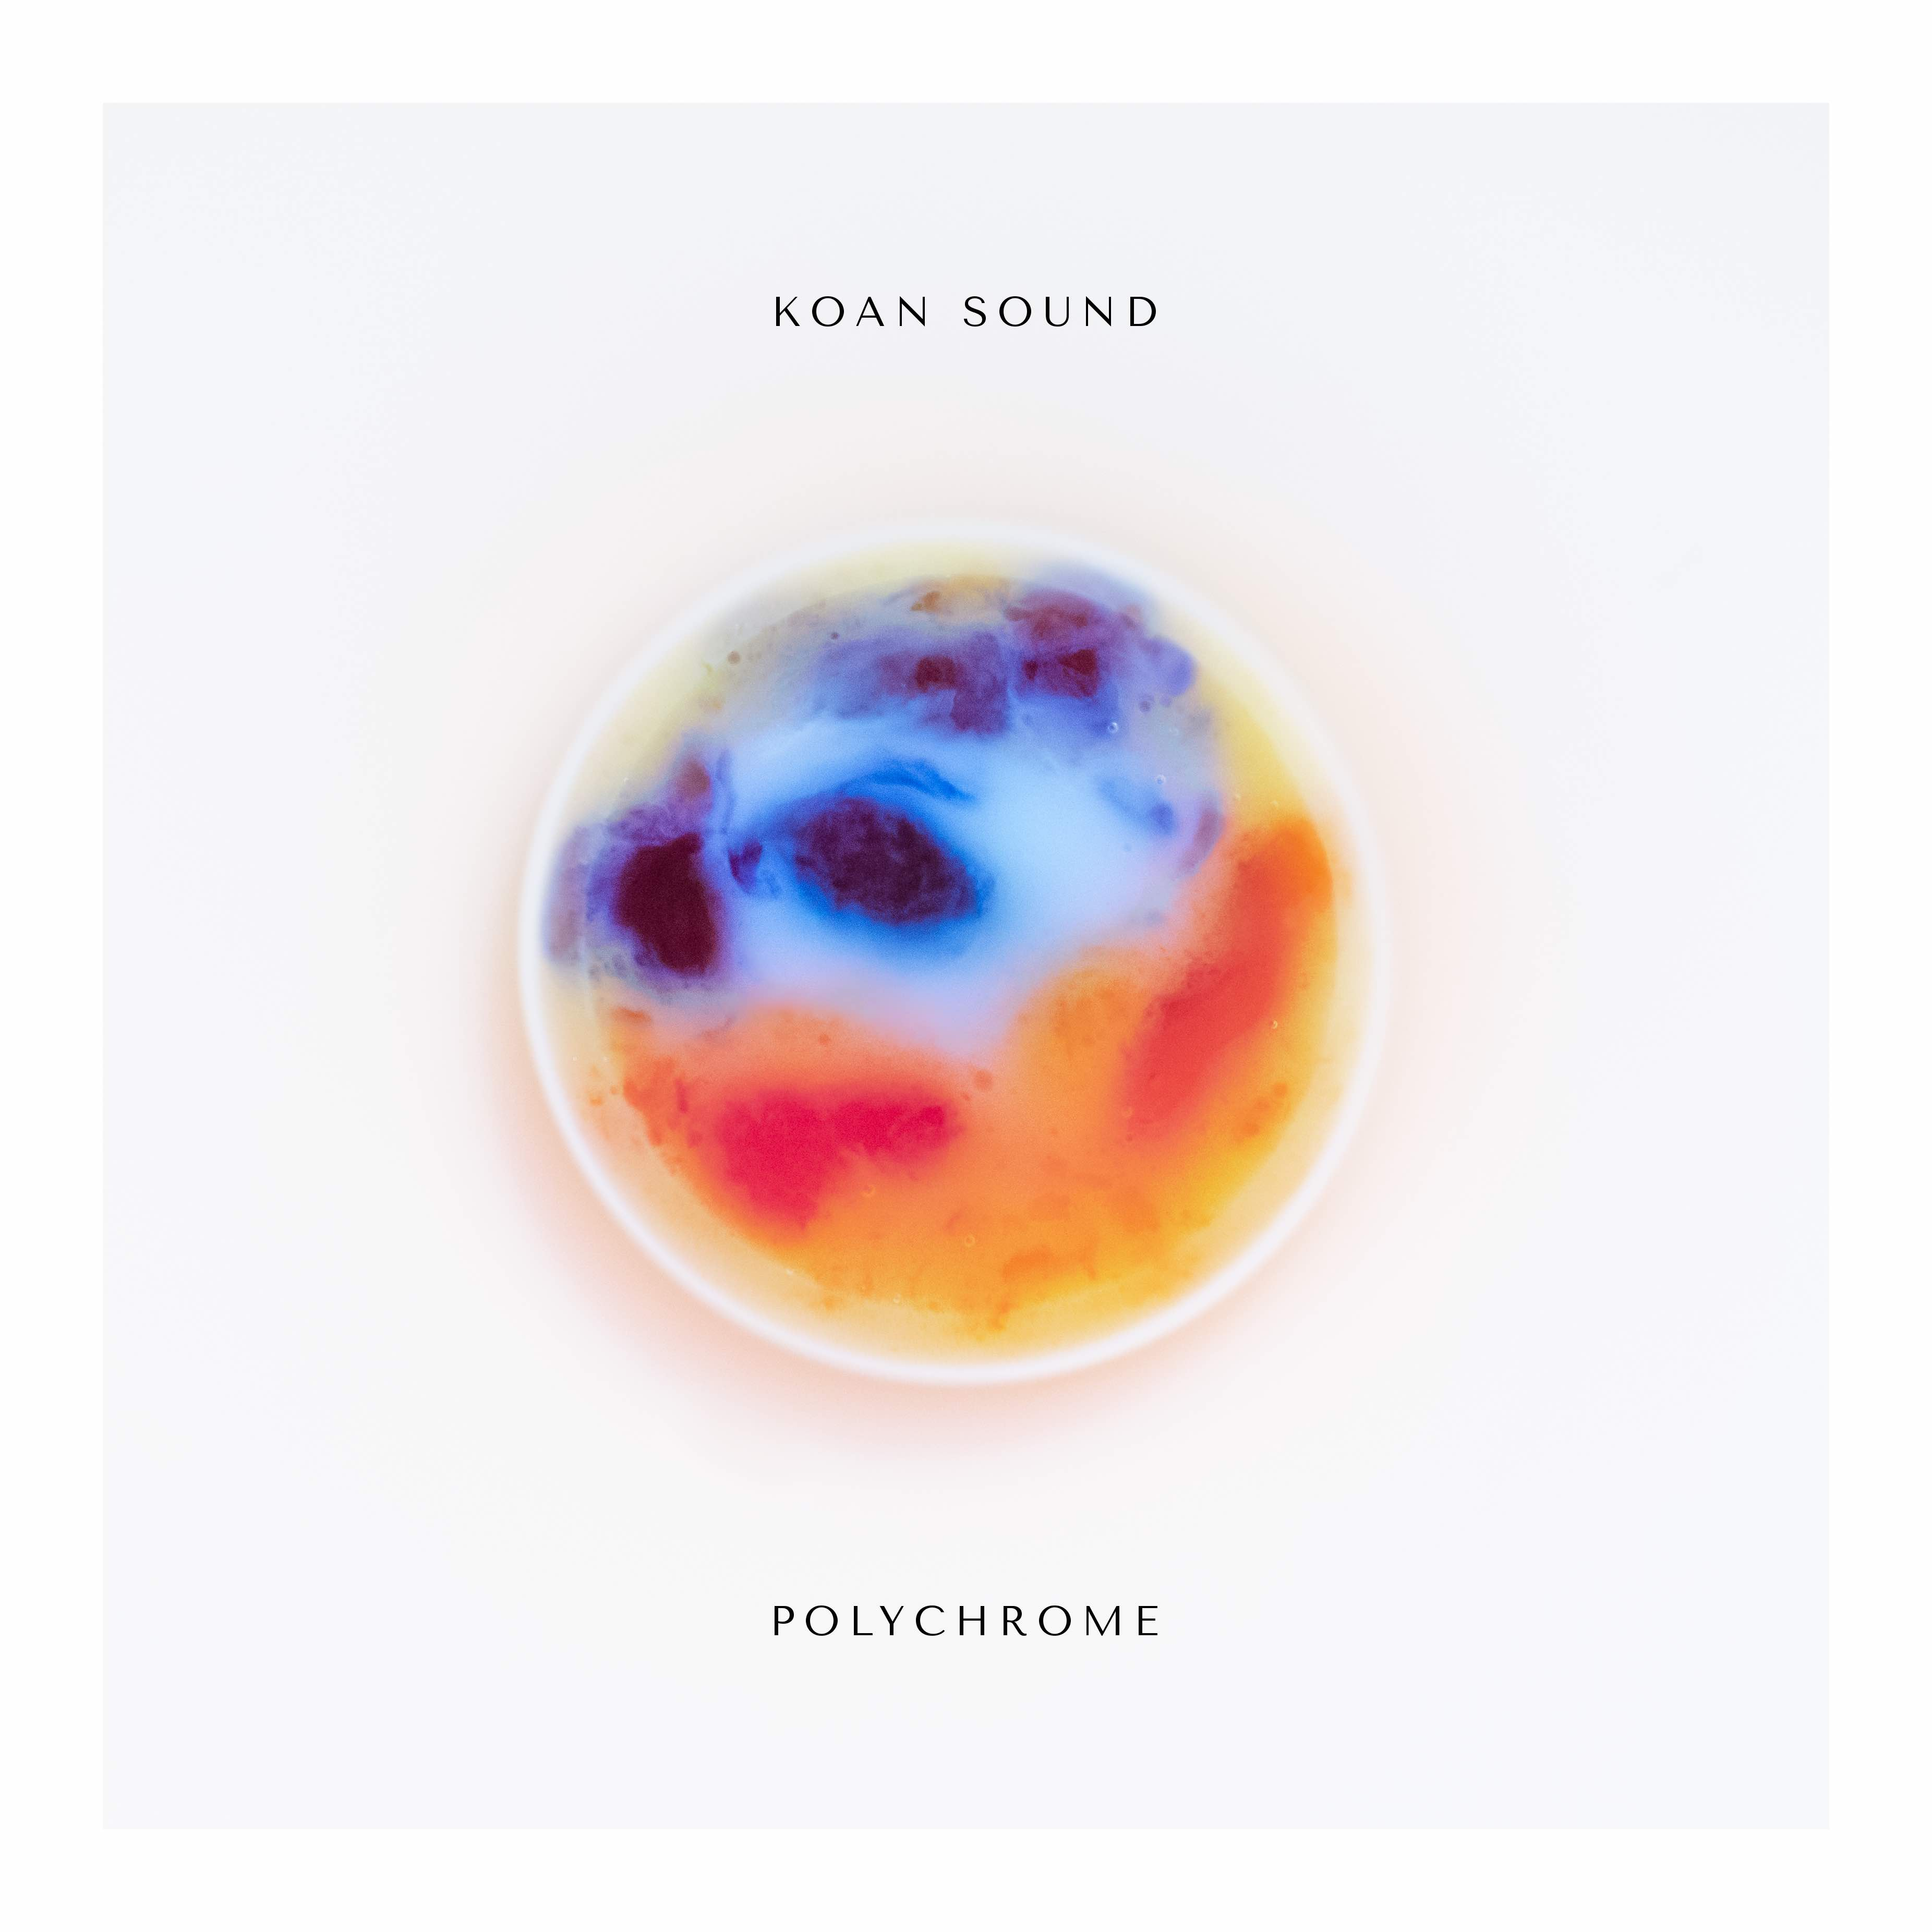 KOAN Sound Returns With Highly Anticipated Album 'Polychrome'